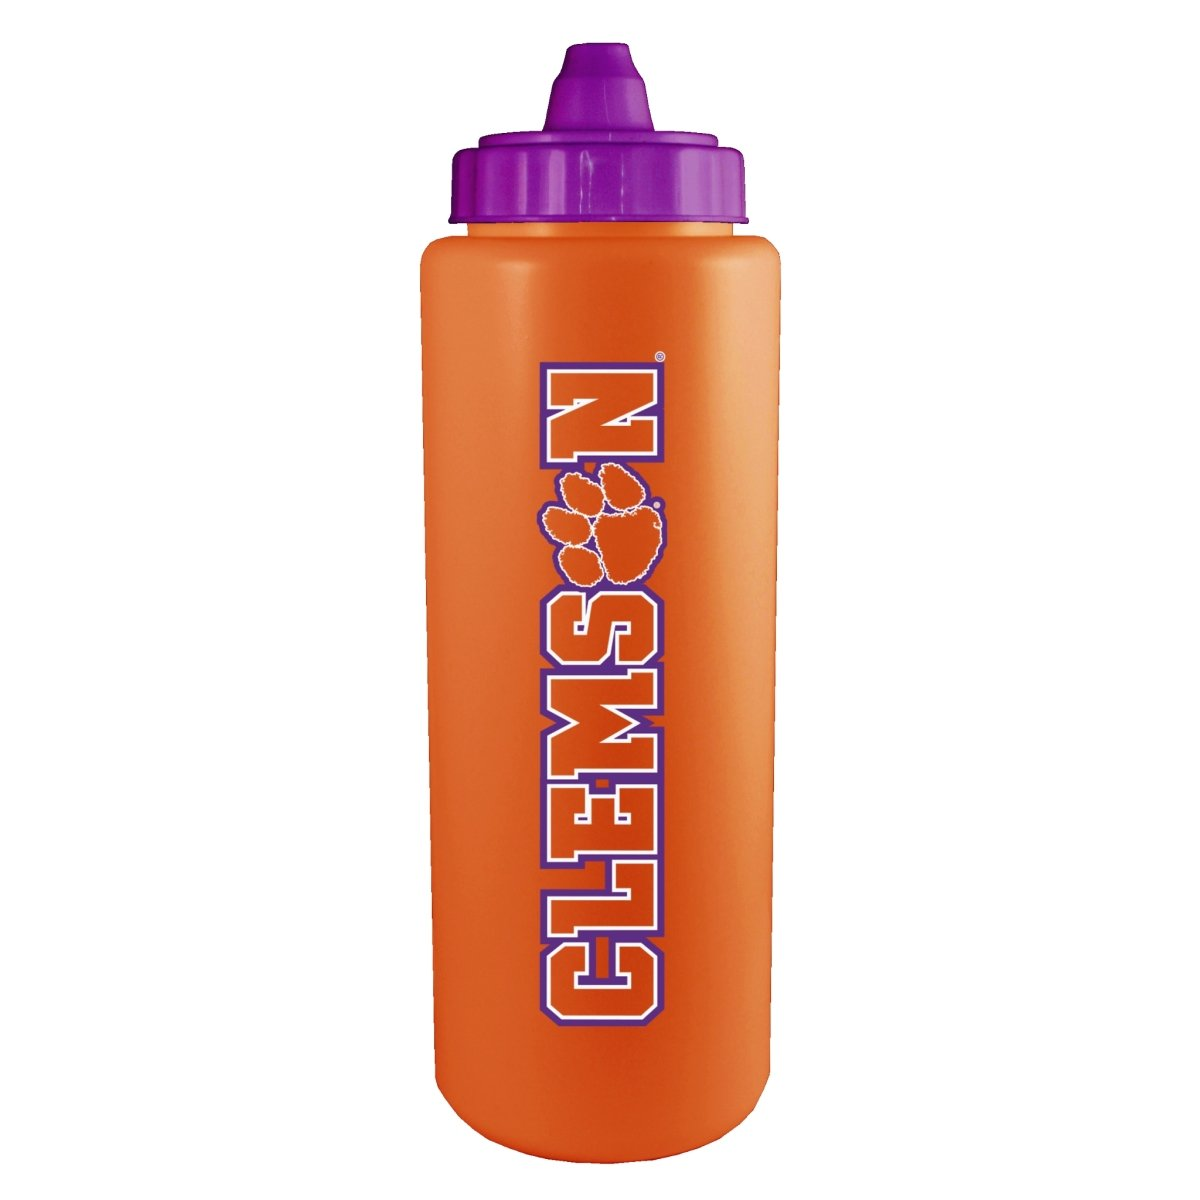 32 Oz. Sideline Sports Bottle - Orange With Purple Top and Word Mark Logo - Mr. Knickerbocker